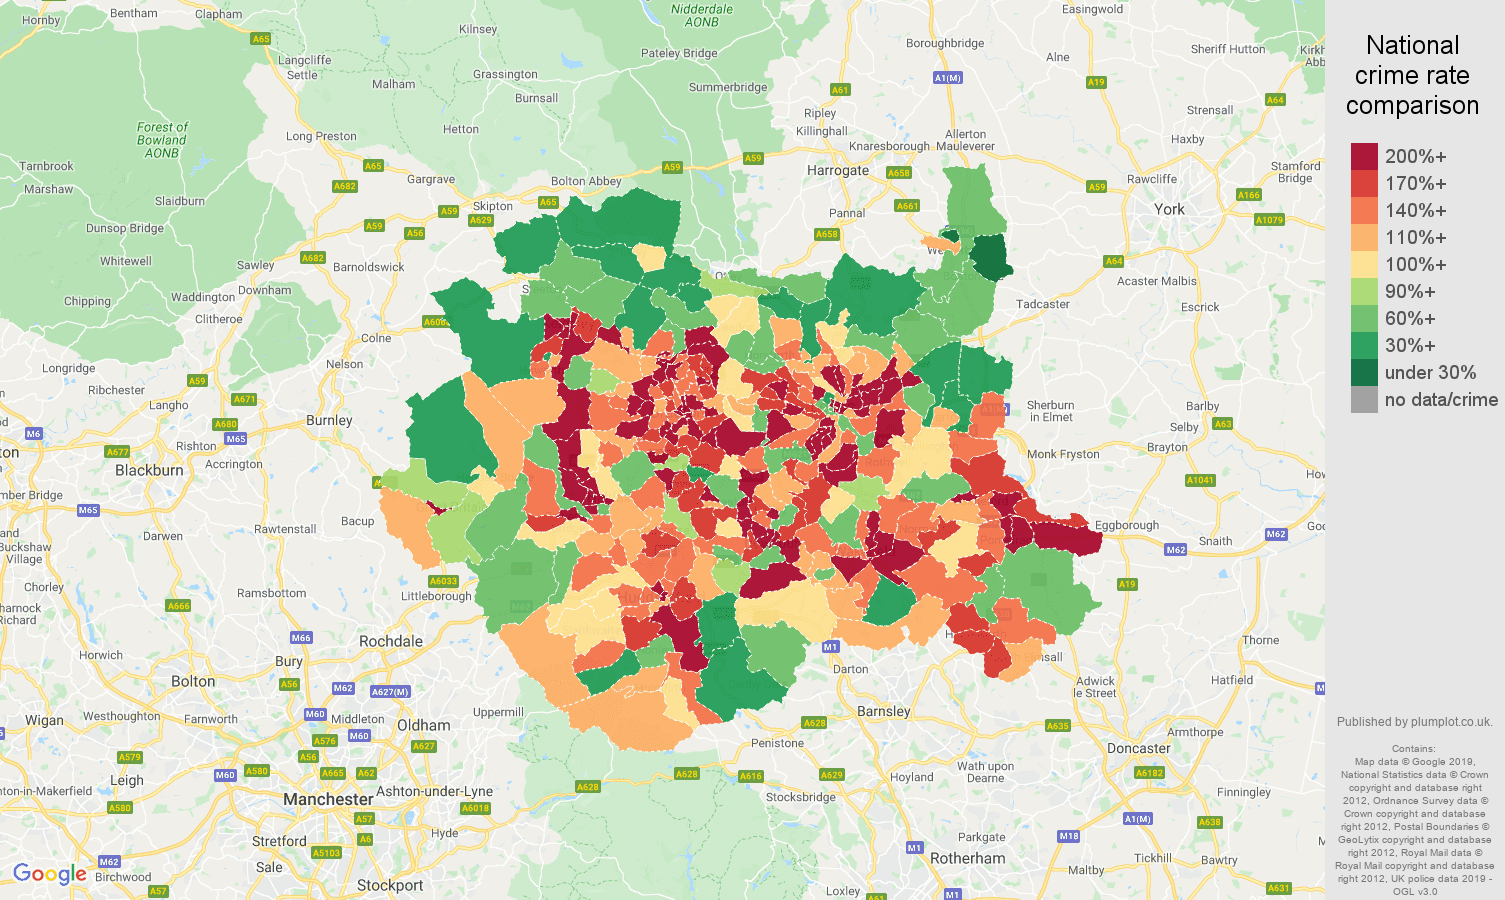 West Yorkshire public order crime rate comparison map